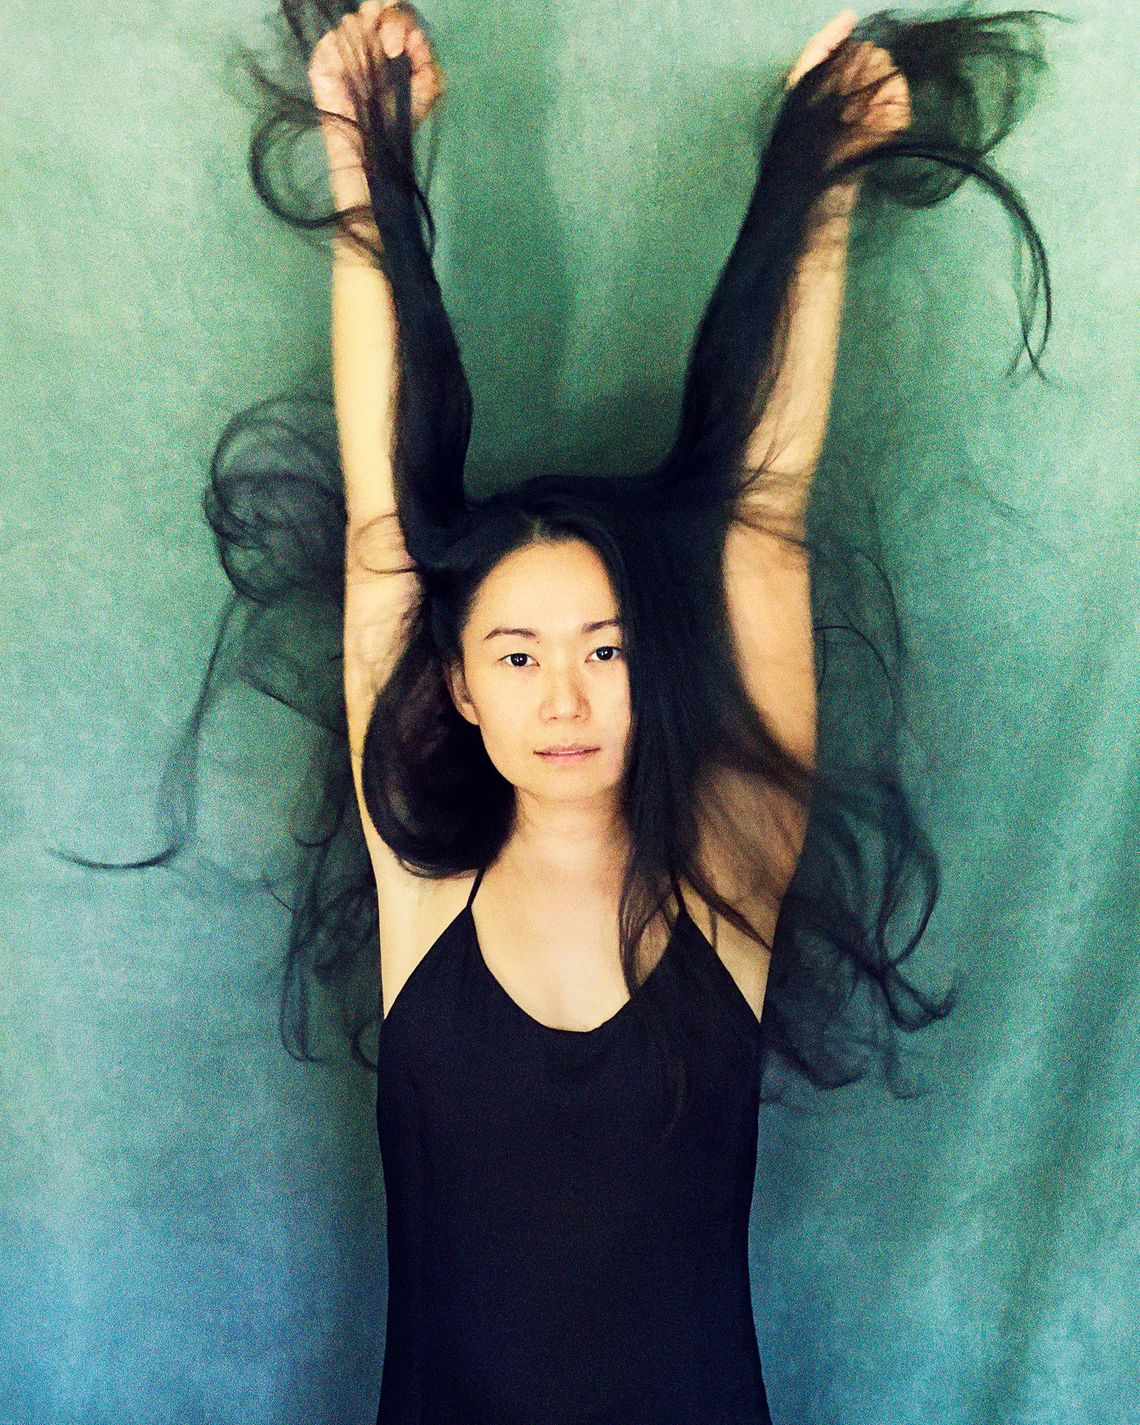 """Vulture: Hong Chau Doesn't Need Your Approval """"I don't task myself with changing minds or being understood anymore."""""""